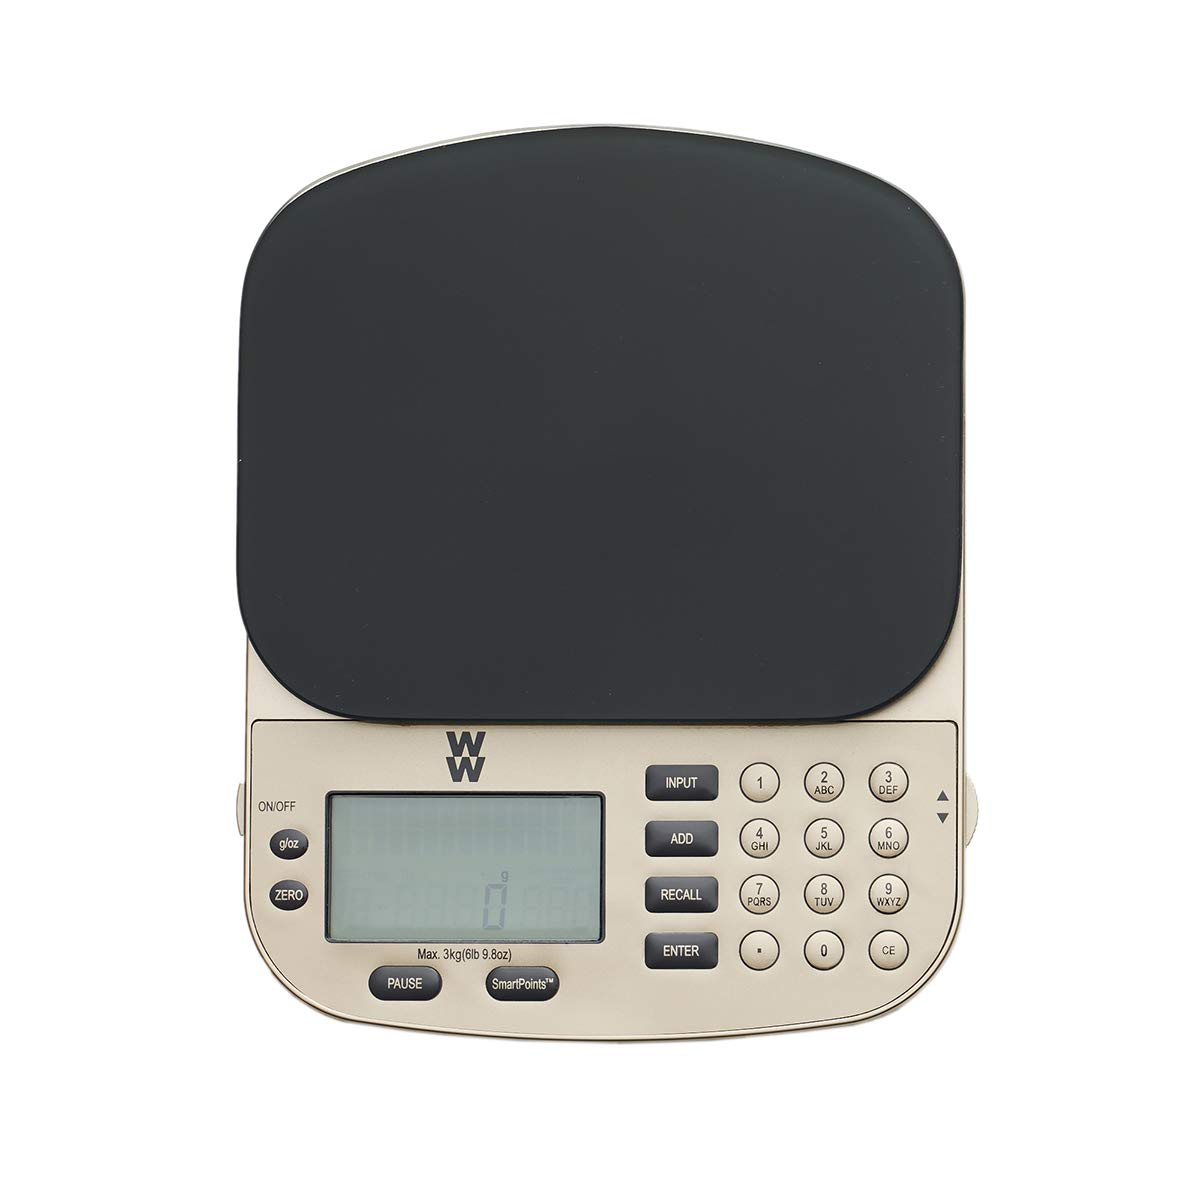 WW SmartPoints Digital Food Scale - Kitchen Scale Measures with Ounces and Grams - Weight Watchers Reimagined